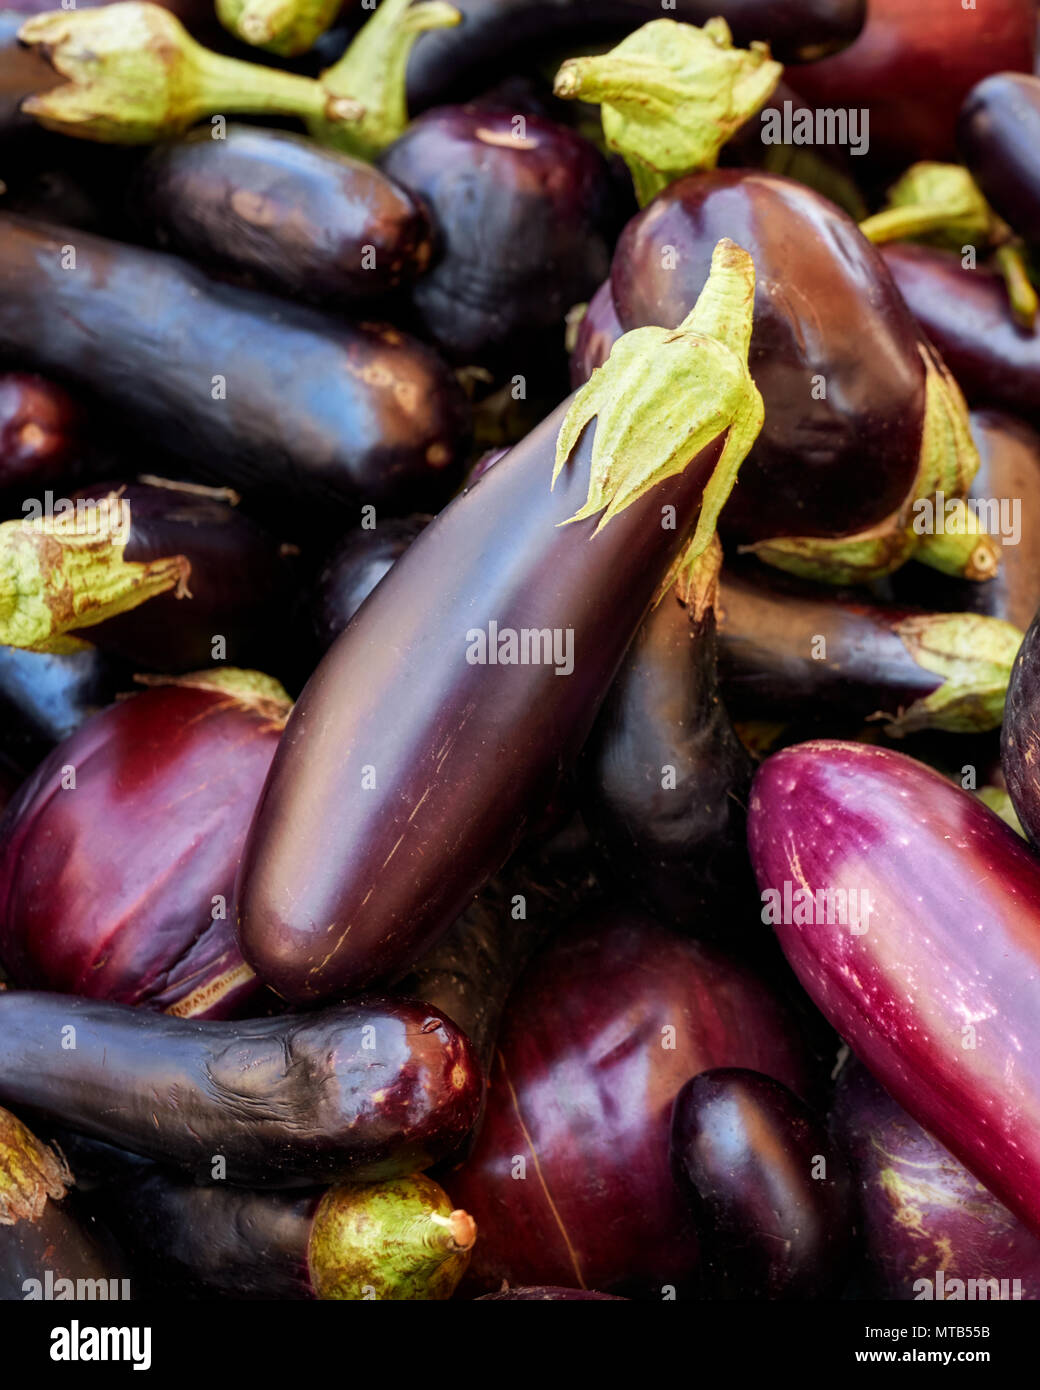 Top down heap of fresh eggplants on a market counter - Stock Image